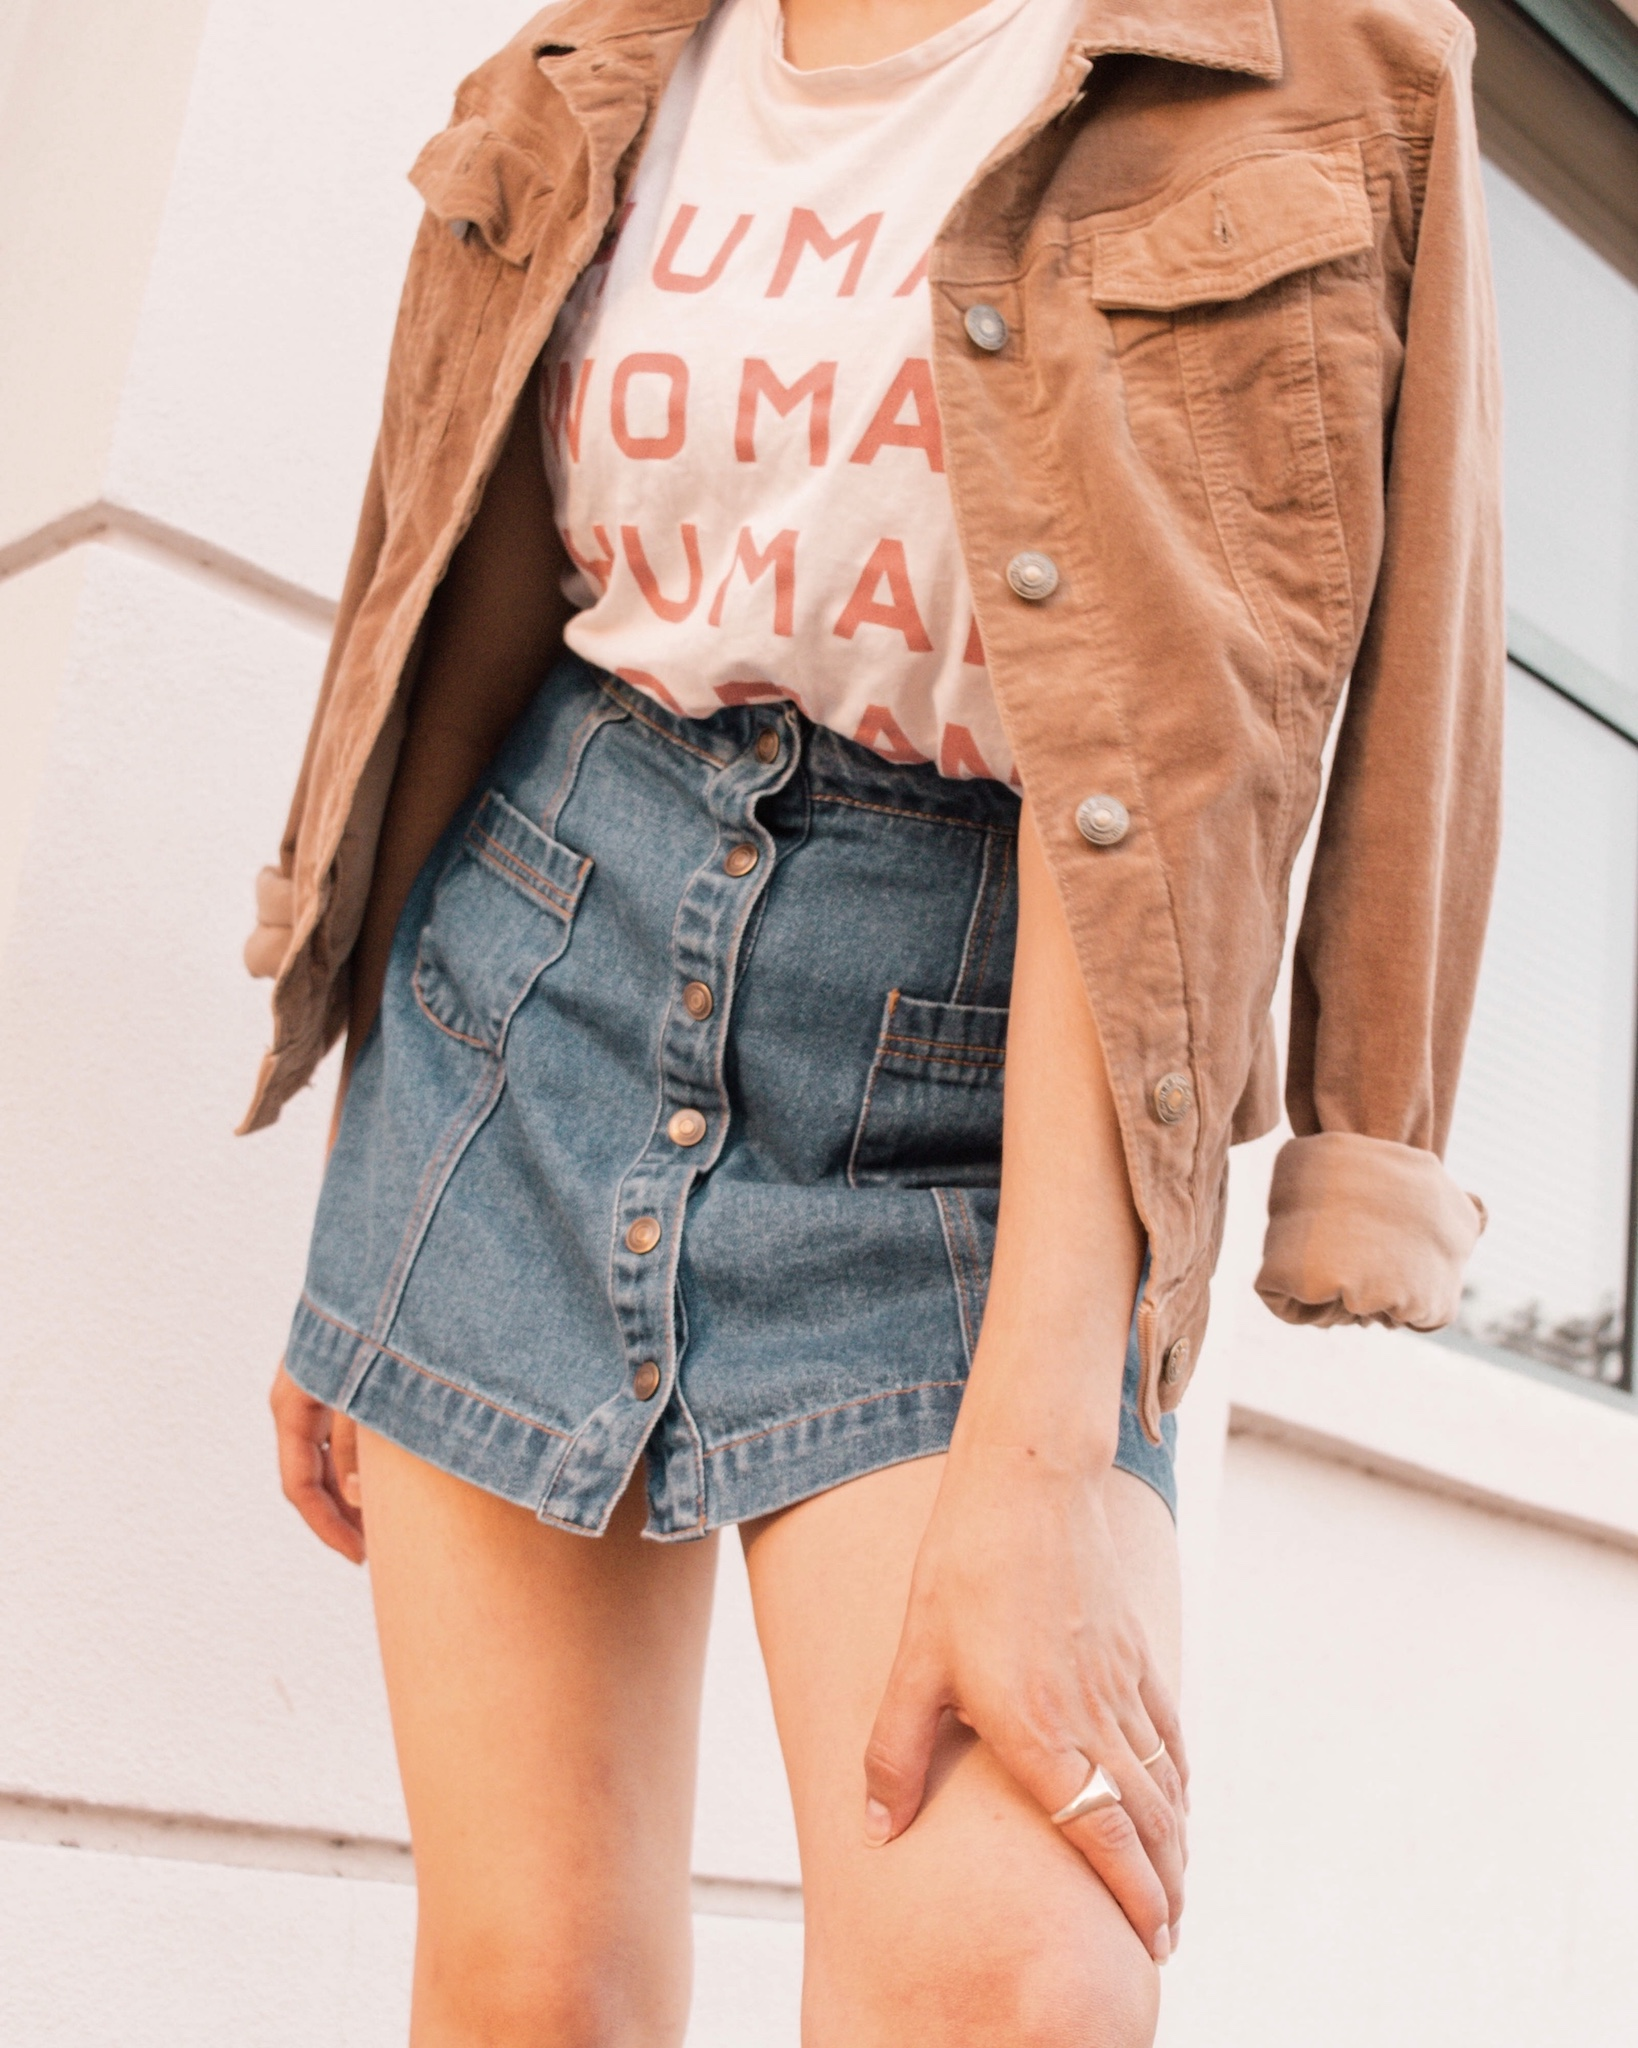 Fall layering outfit ideas // A Week Of Self-Expressive Outfits With Aja Duran From Aja With Love on The Good Trade